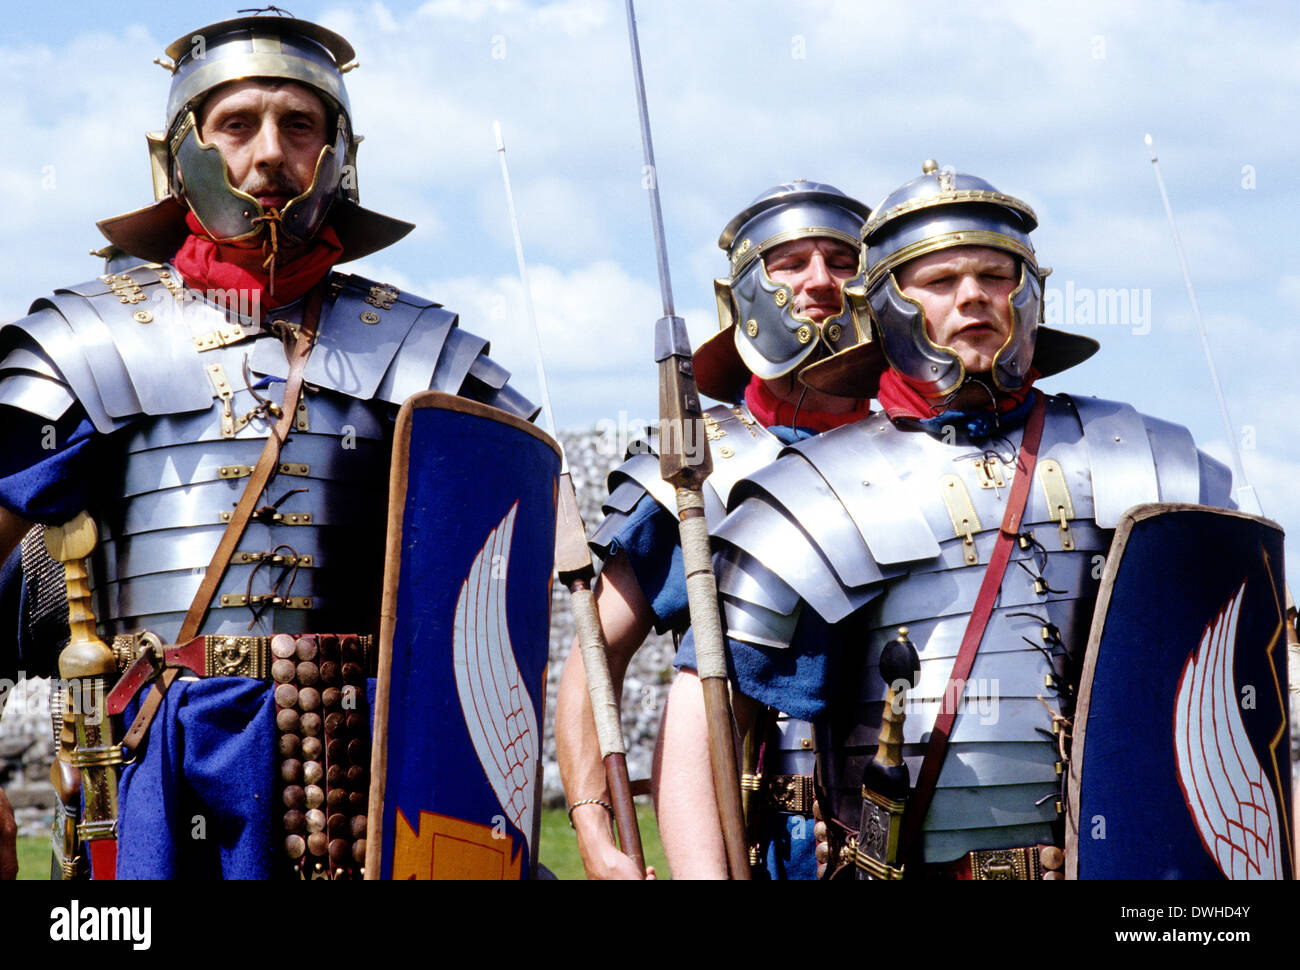 Roman Army, 14th Legion in Britain, 2nd century, historical re-enactment legionary soldier soldiers England UK - Stock Image